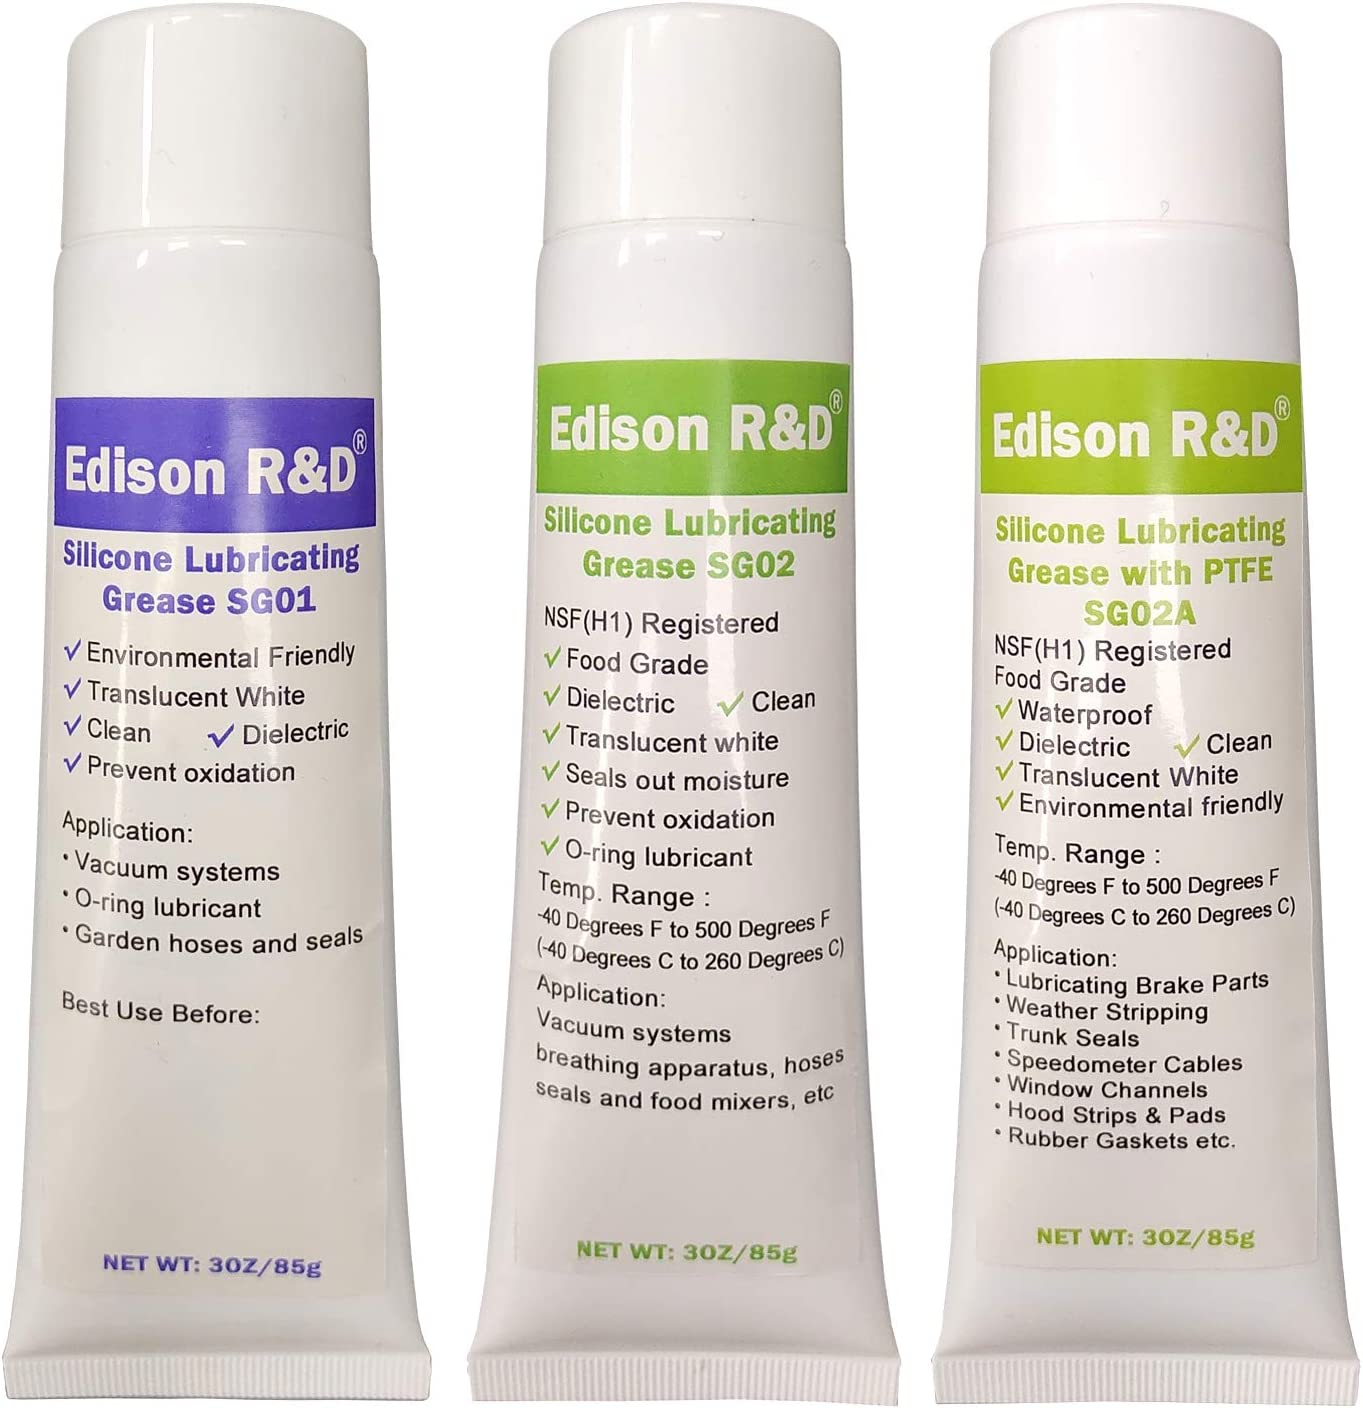 Edison R&D Best Selected Silicon Grease Three Formula SG01 Standard, SG02, SG02A Food Grade with PTFE Mulit Function Lubricant, Faucet O-ring Lubricant Water Proof, Dielectric, Oil Resistant3/Pack